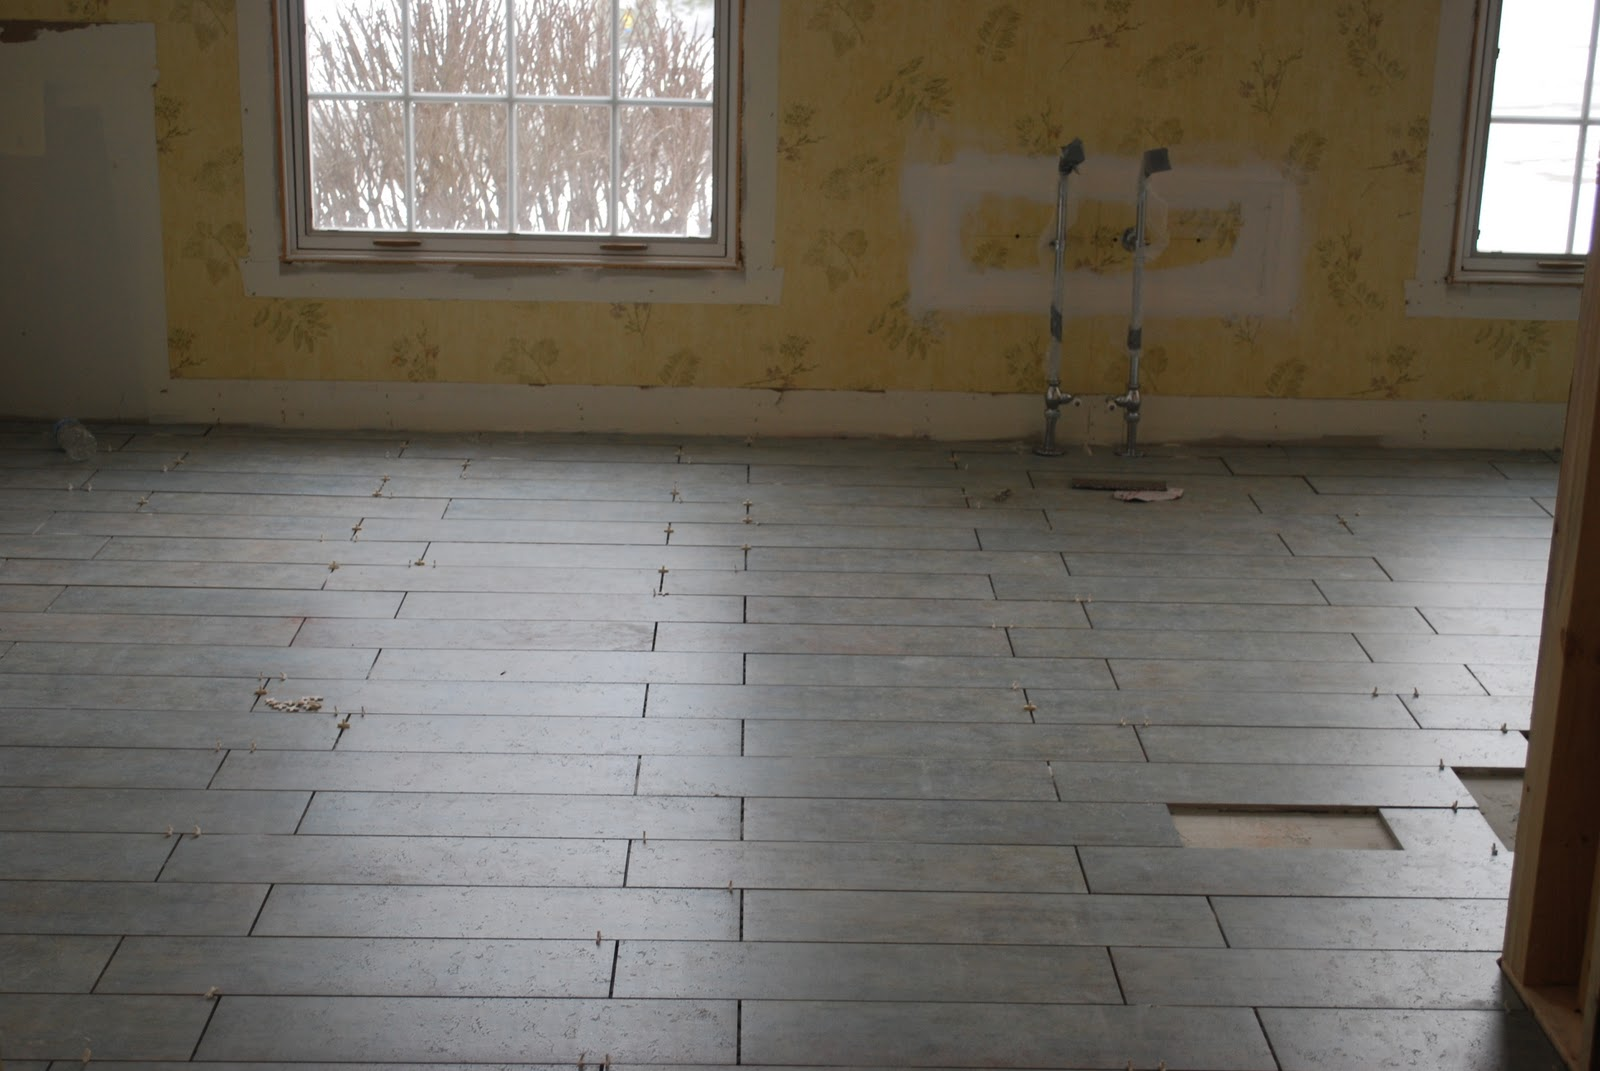 Sweet chaos home the floor tile saga friday january 28 2011 dailygadgetfo Images